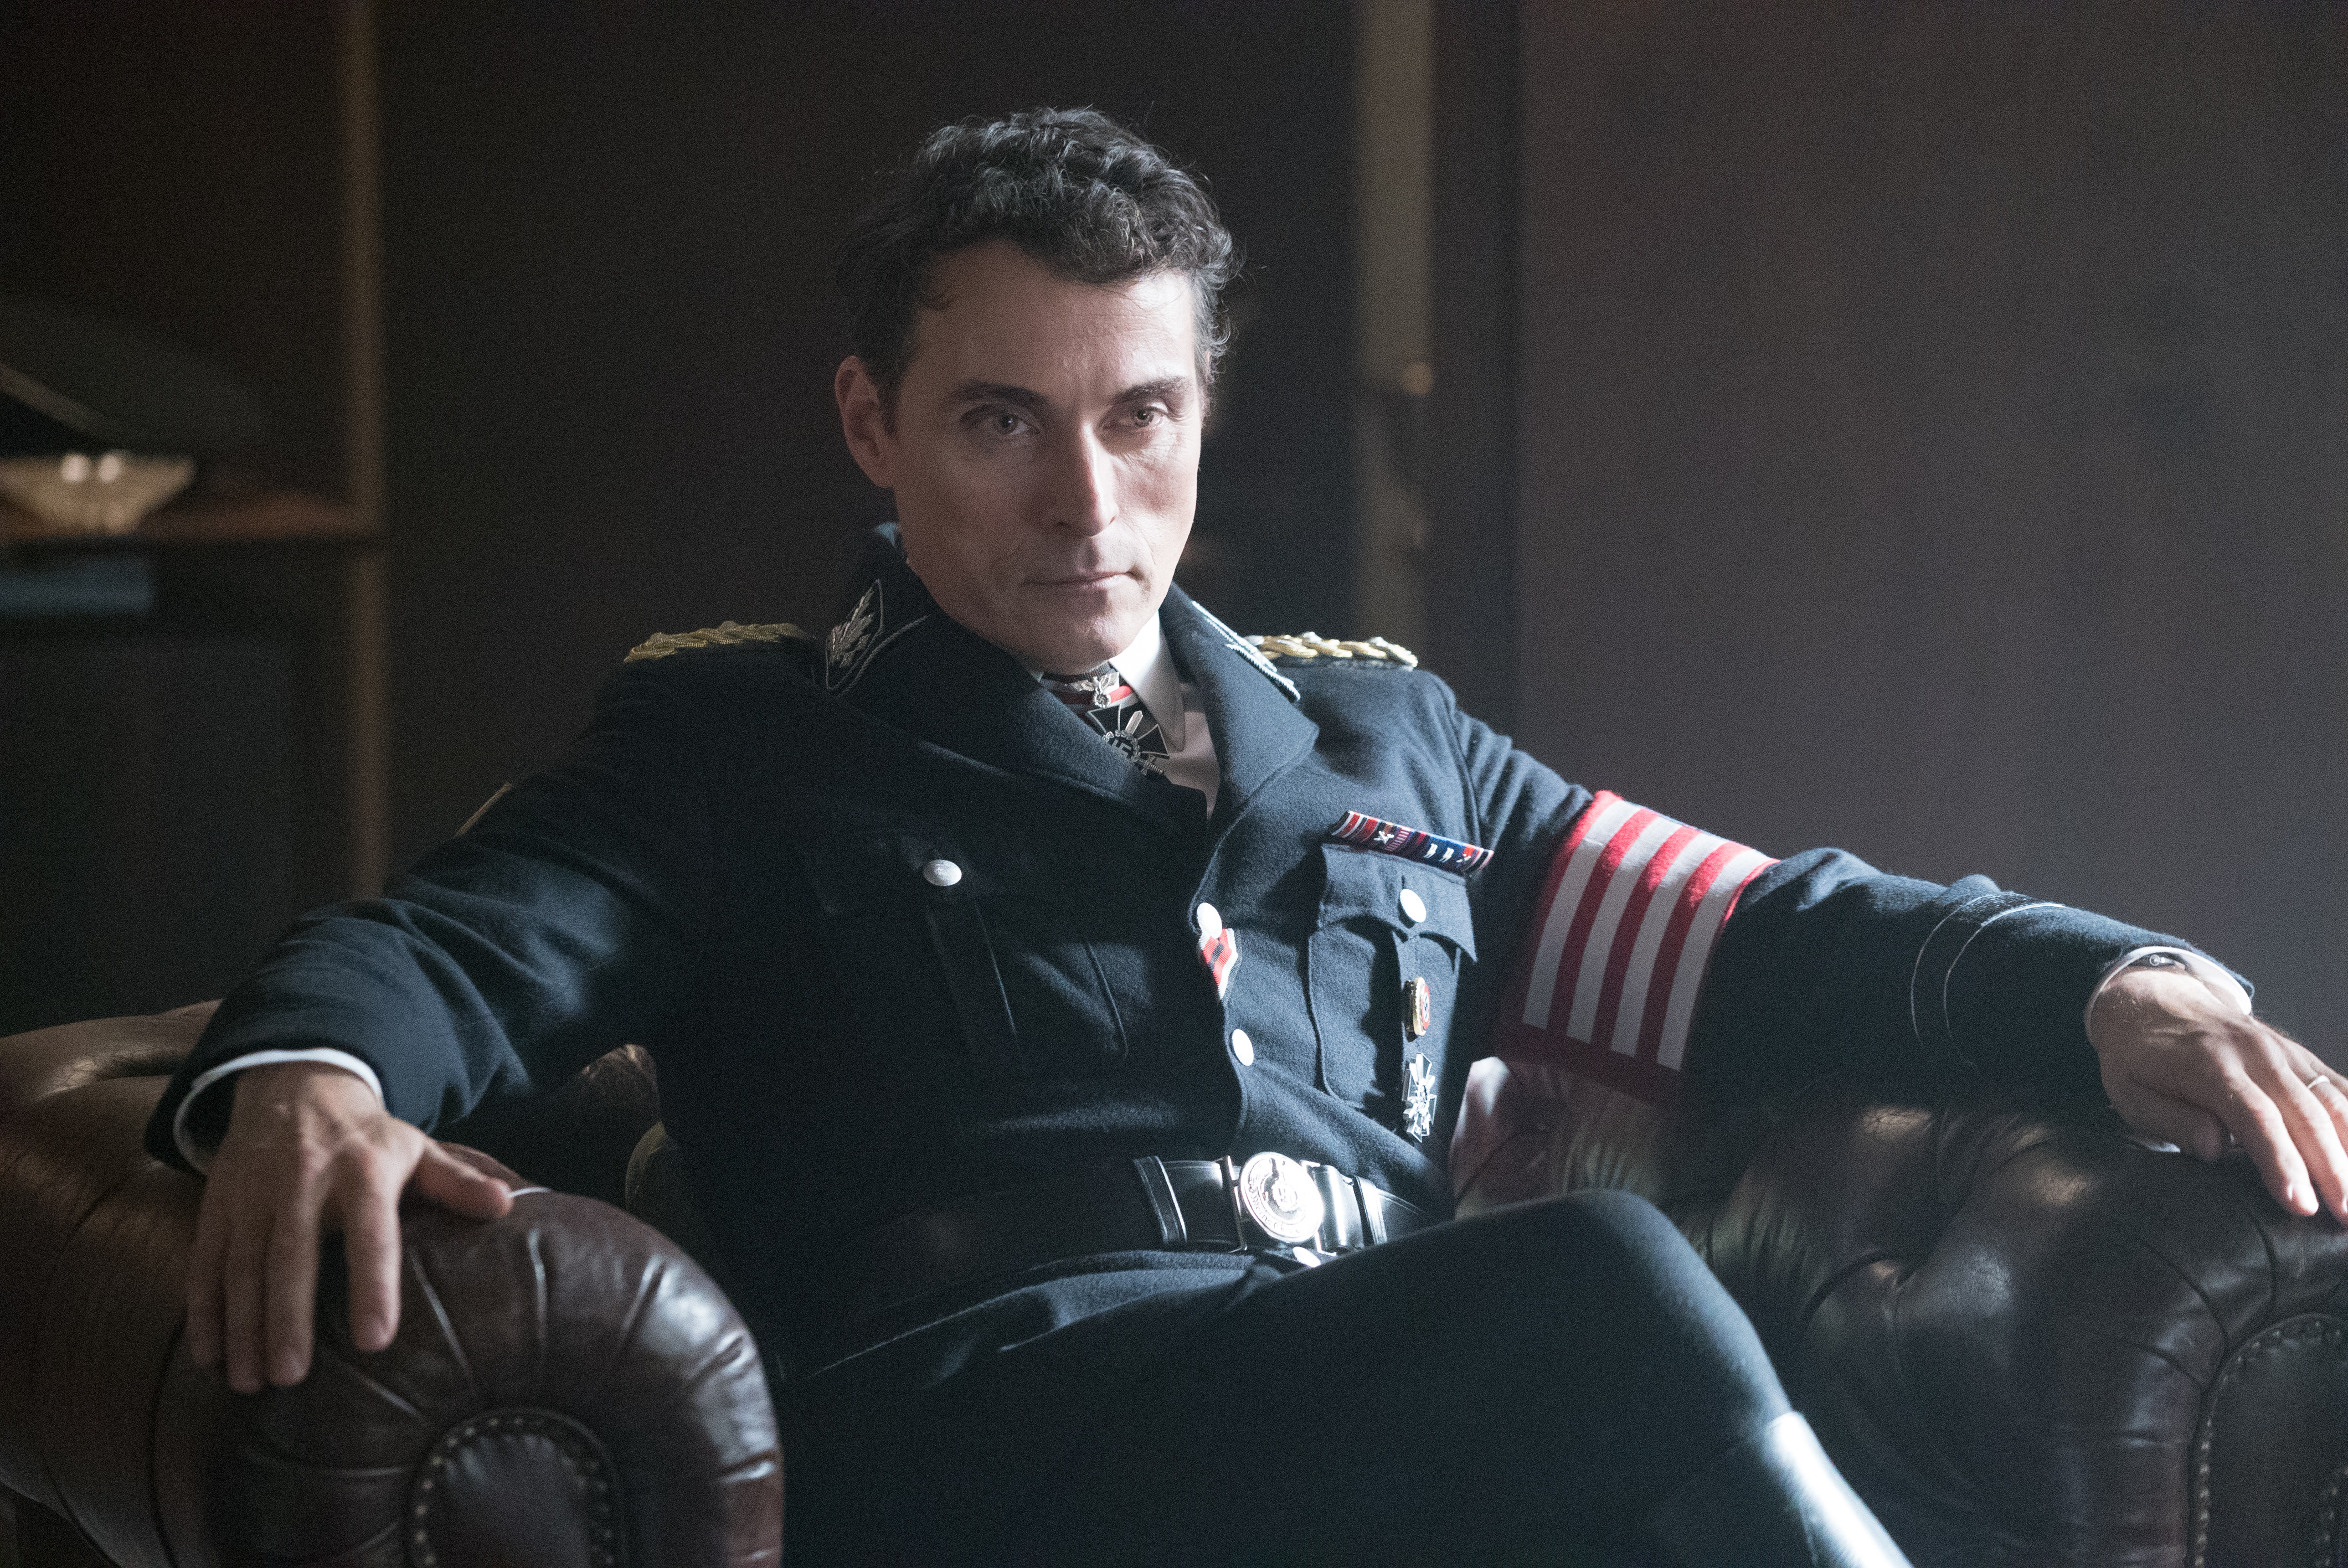 'The Man in the High Castle': Is Amazon's Drama Smart Christmas Counter-Programming or Too Dark For the Holidays?